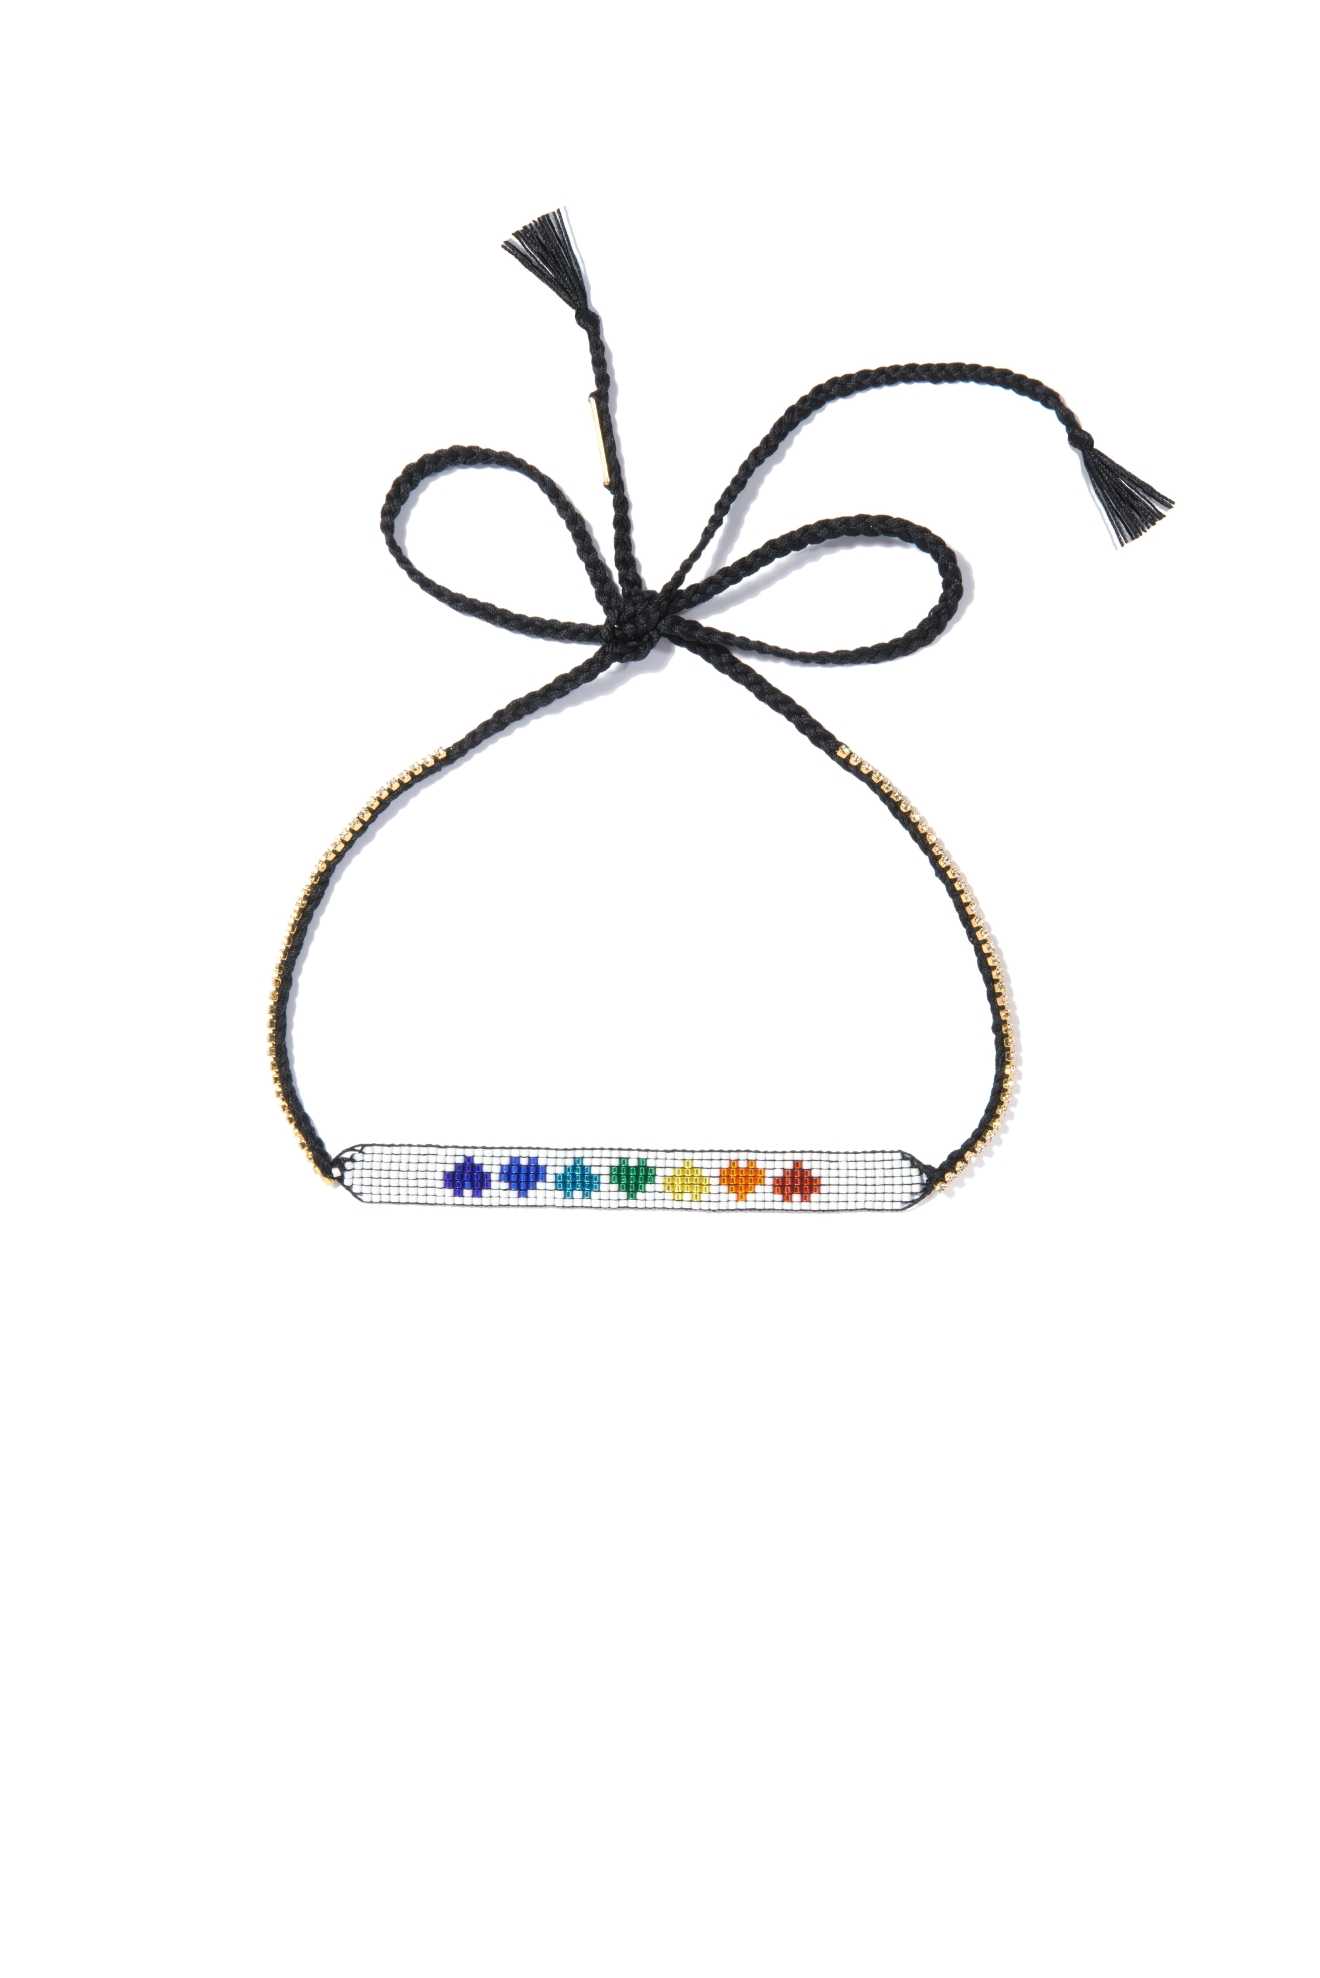 Venessa Arizaga Rainbow Hearts Necklace - $125. Buy at shop.nordstrom.com/c/pop-in-olivia-kim (Image: Nordstrom)